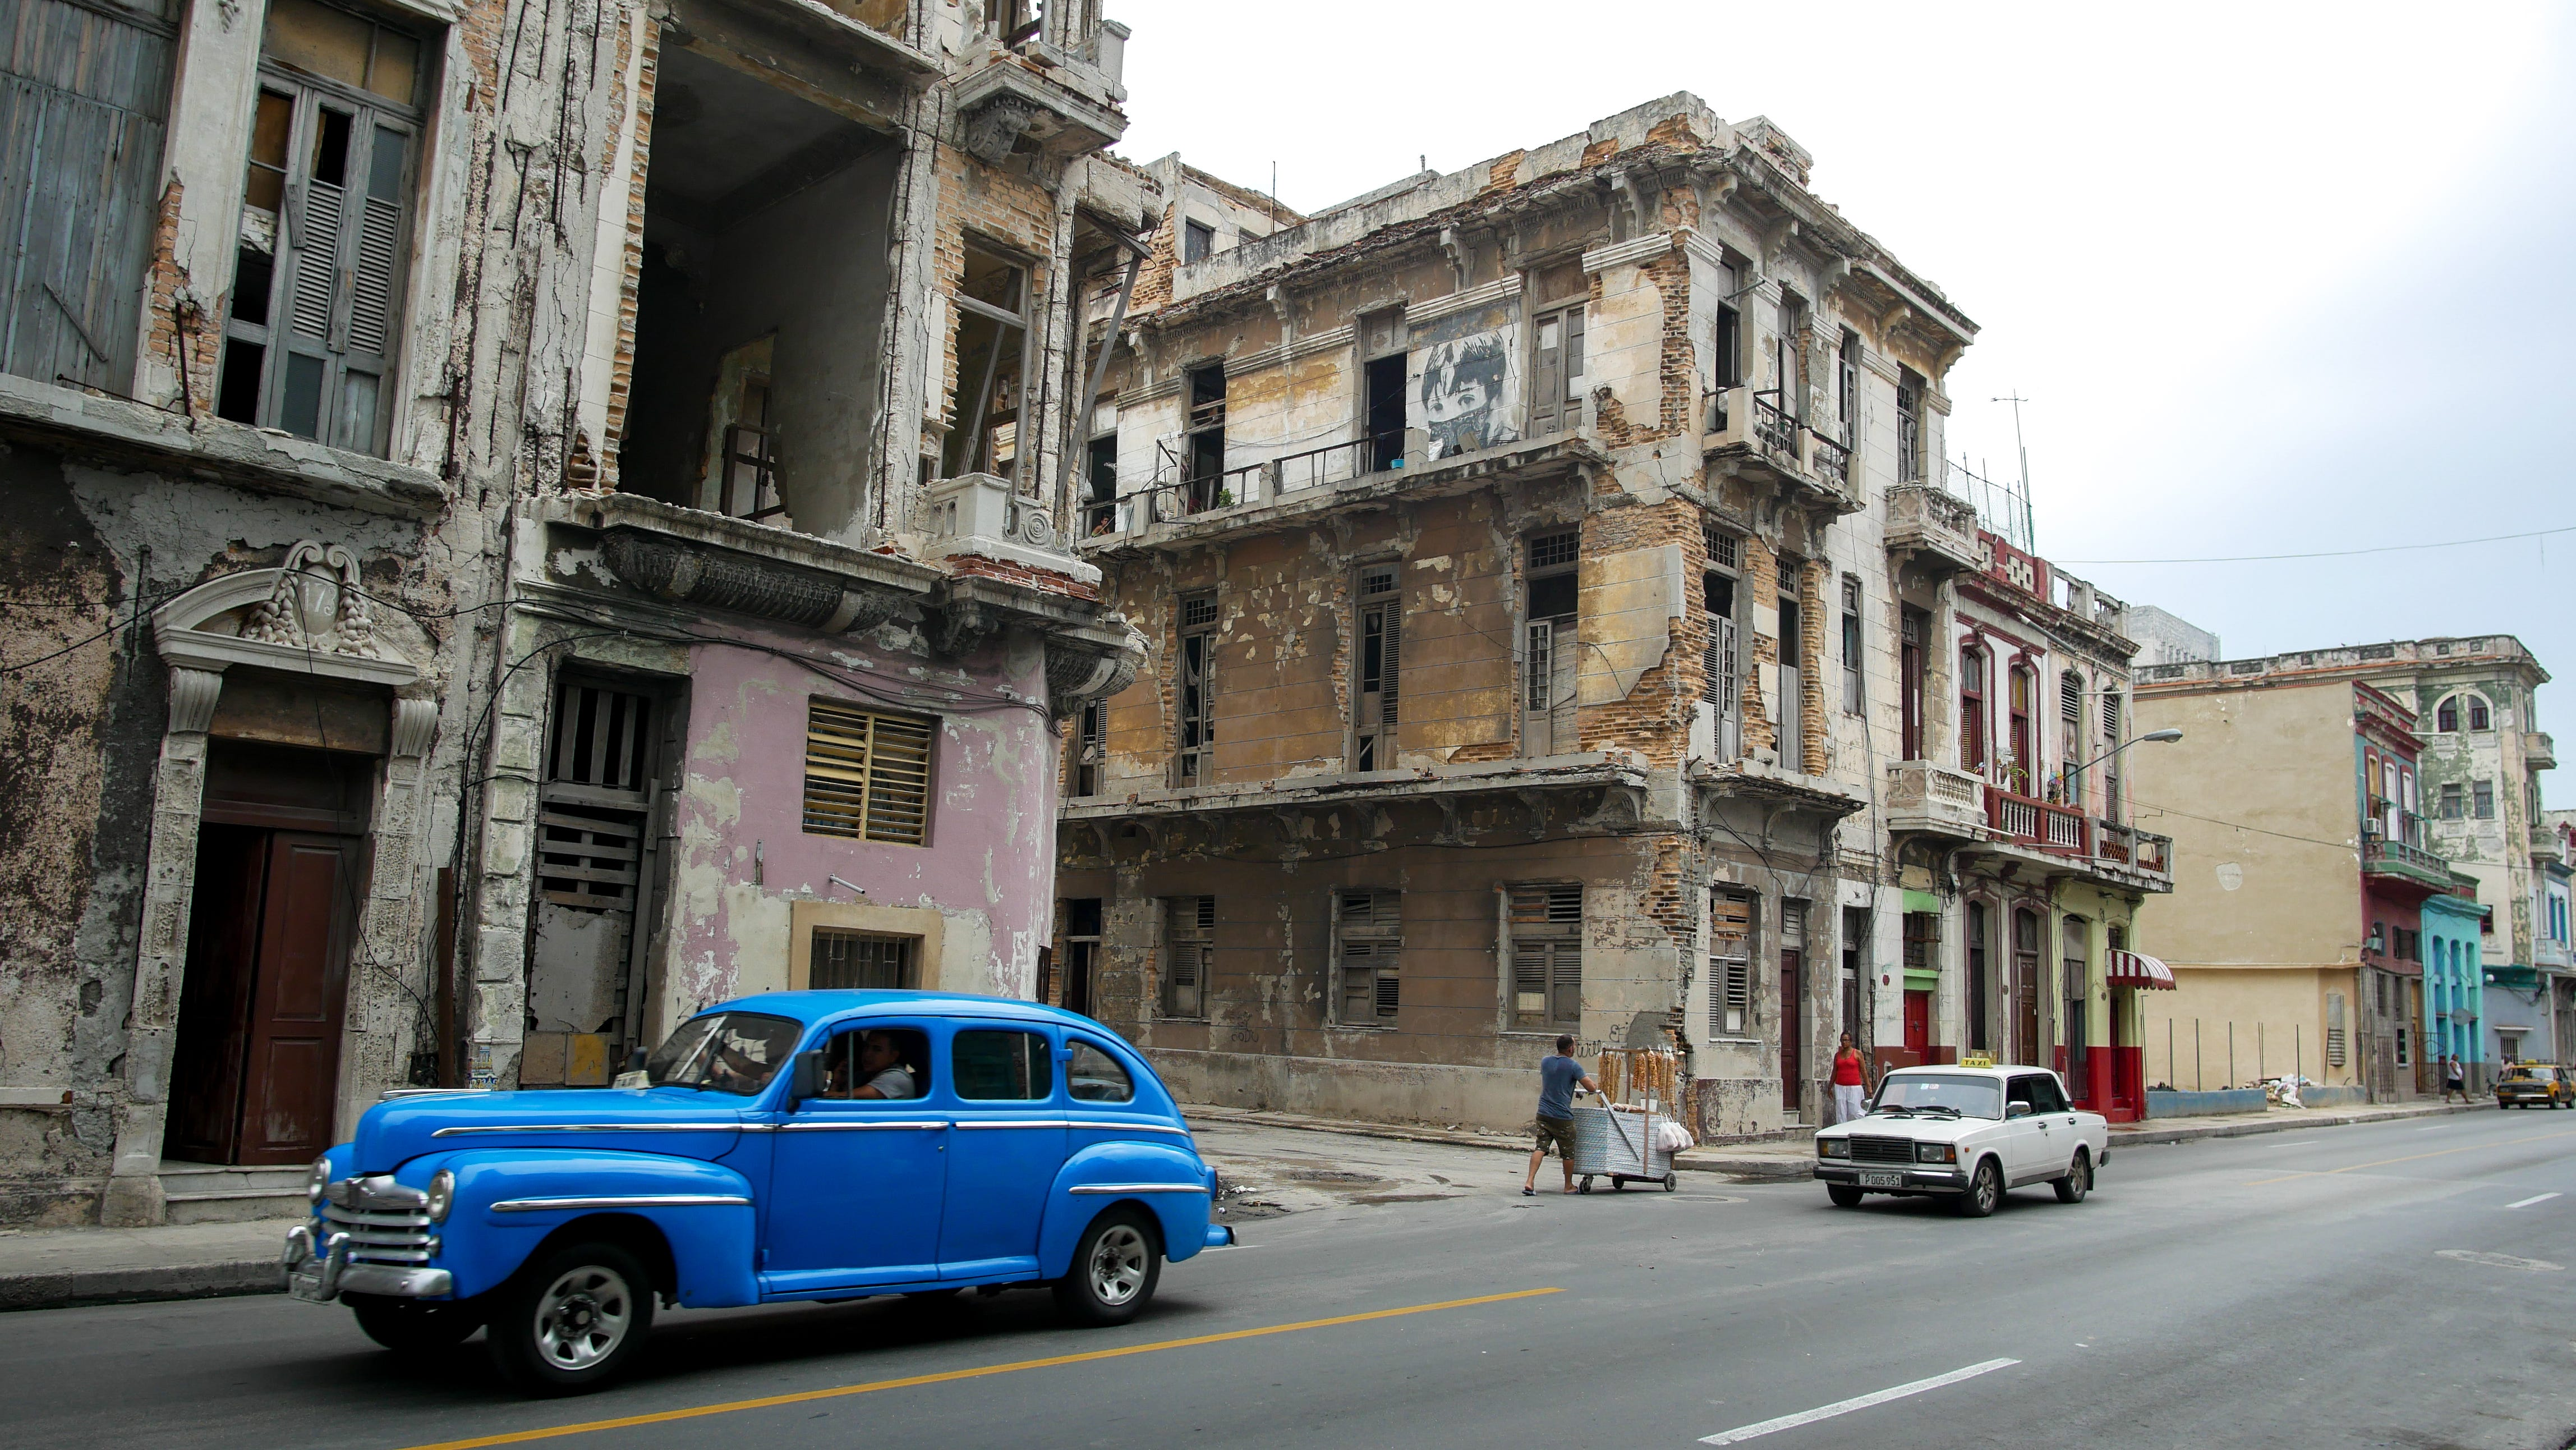 Buildings a block from Havana's famed Malecón, a seaside walkway stretching more than four miles, show the ravages of time and weather. Photo: Tracey Eaton.